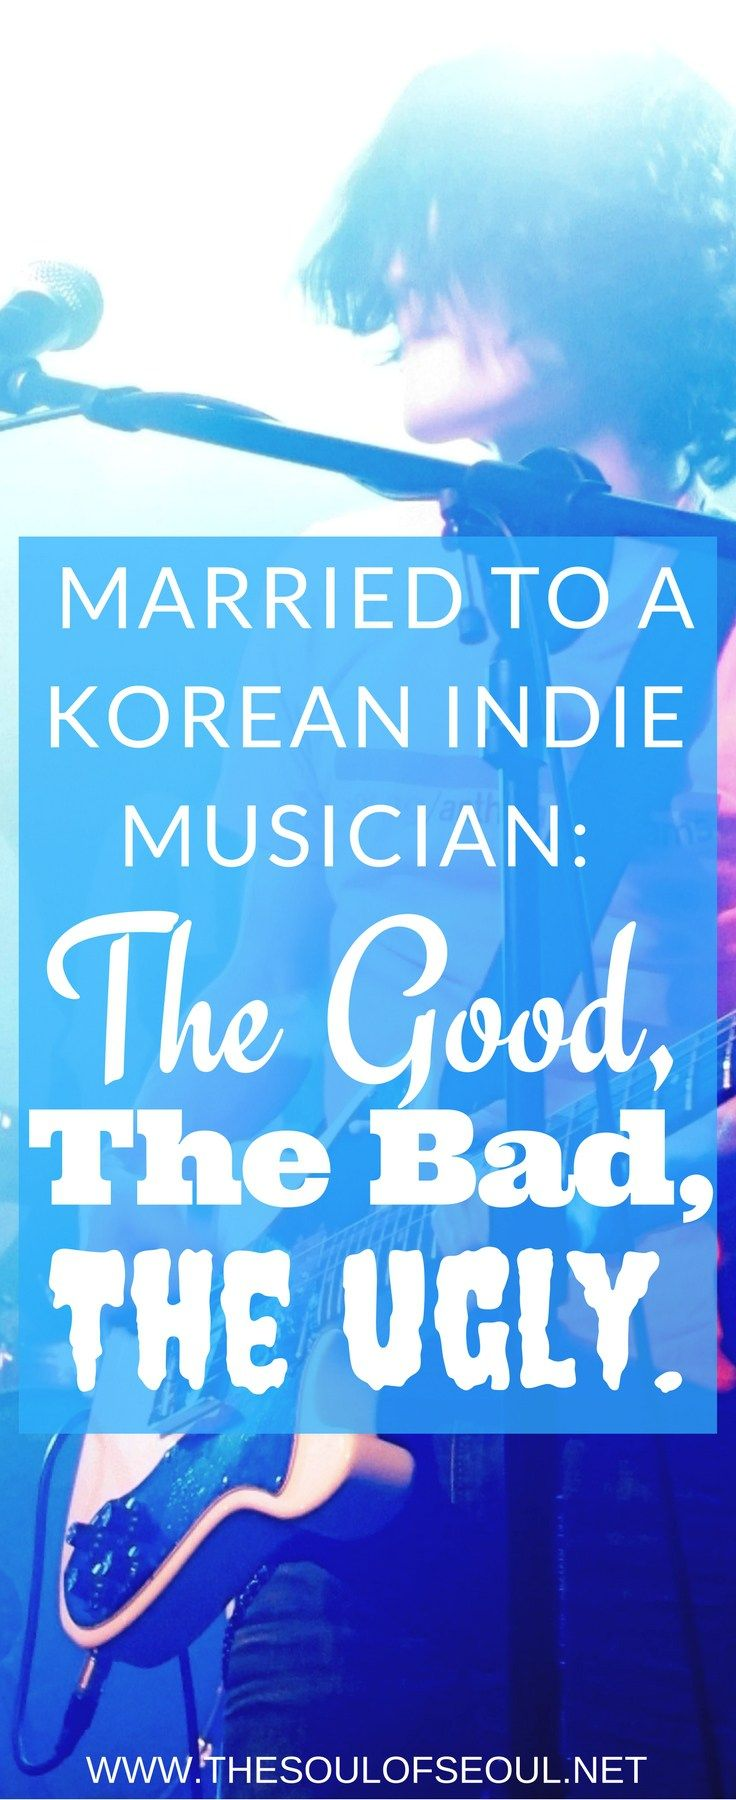 Married To a Korean Indie Musician: The Good, The Bad & The Ugly: This post cannot possibly cover everything awesome, more awesome or otherwise when it comes to being married to an indie musician, but it's a good start... An American married to a Korean indie musician talks about the good, the bad and the ugly of marriage to a rockstar.